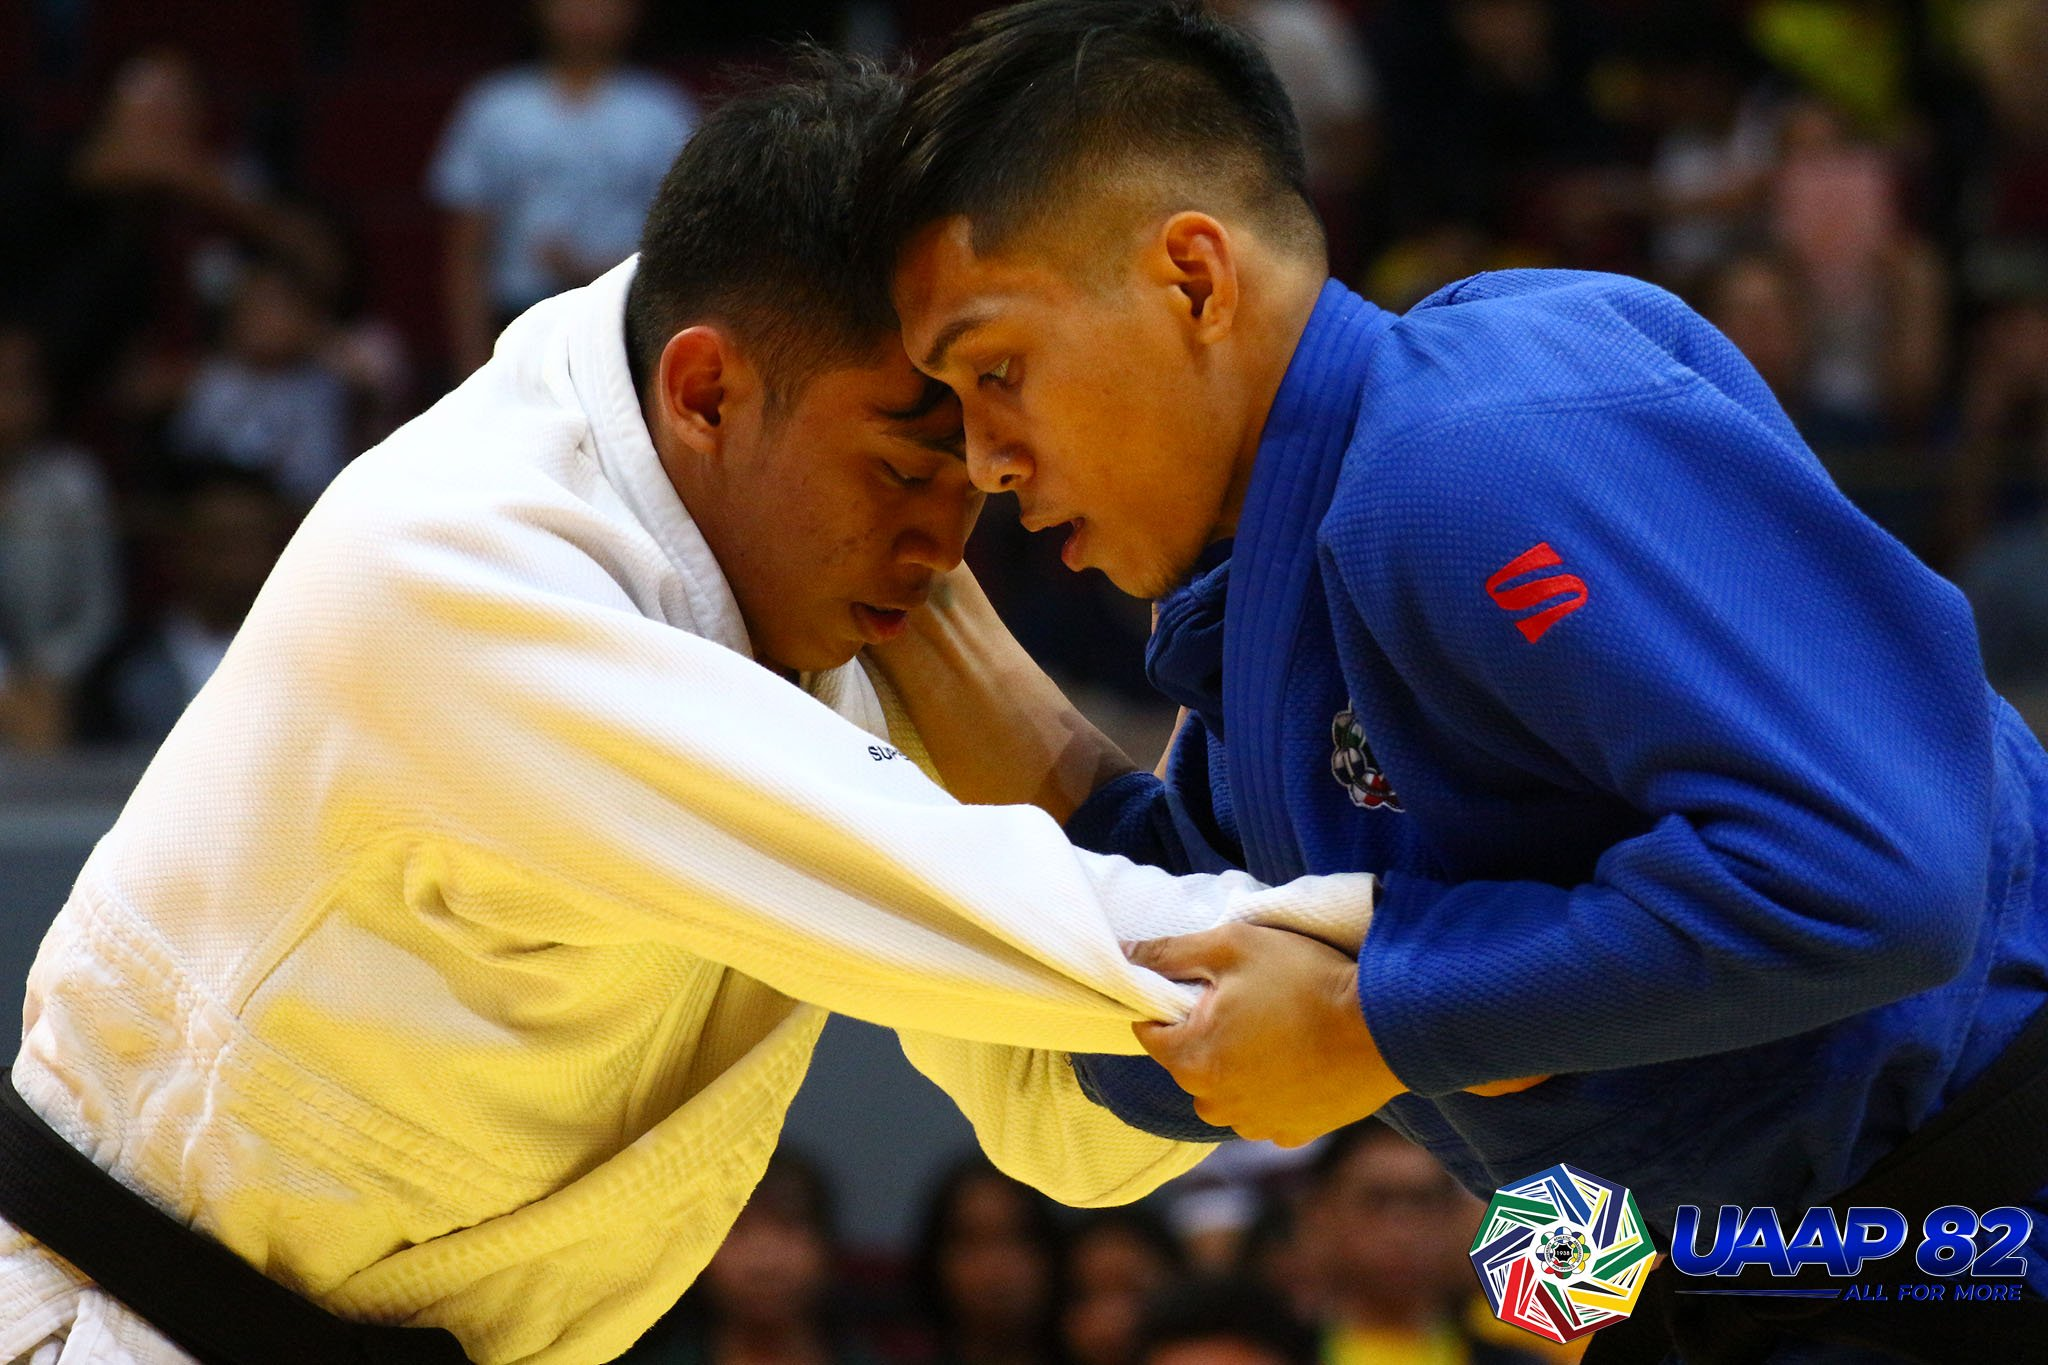 UAAP-82-Mens-Judo-Minus-66-HLW-Final-UP-v-UST-Benavides-Figueroa Rookie Ligero, senior Lorenzo lift UST to UAAP Judo four-peat ADMU Judo News UAAP UP UST  - philippine sports news